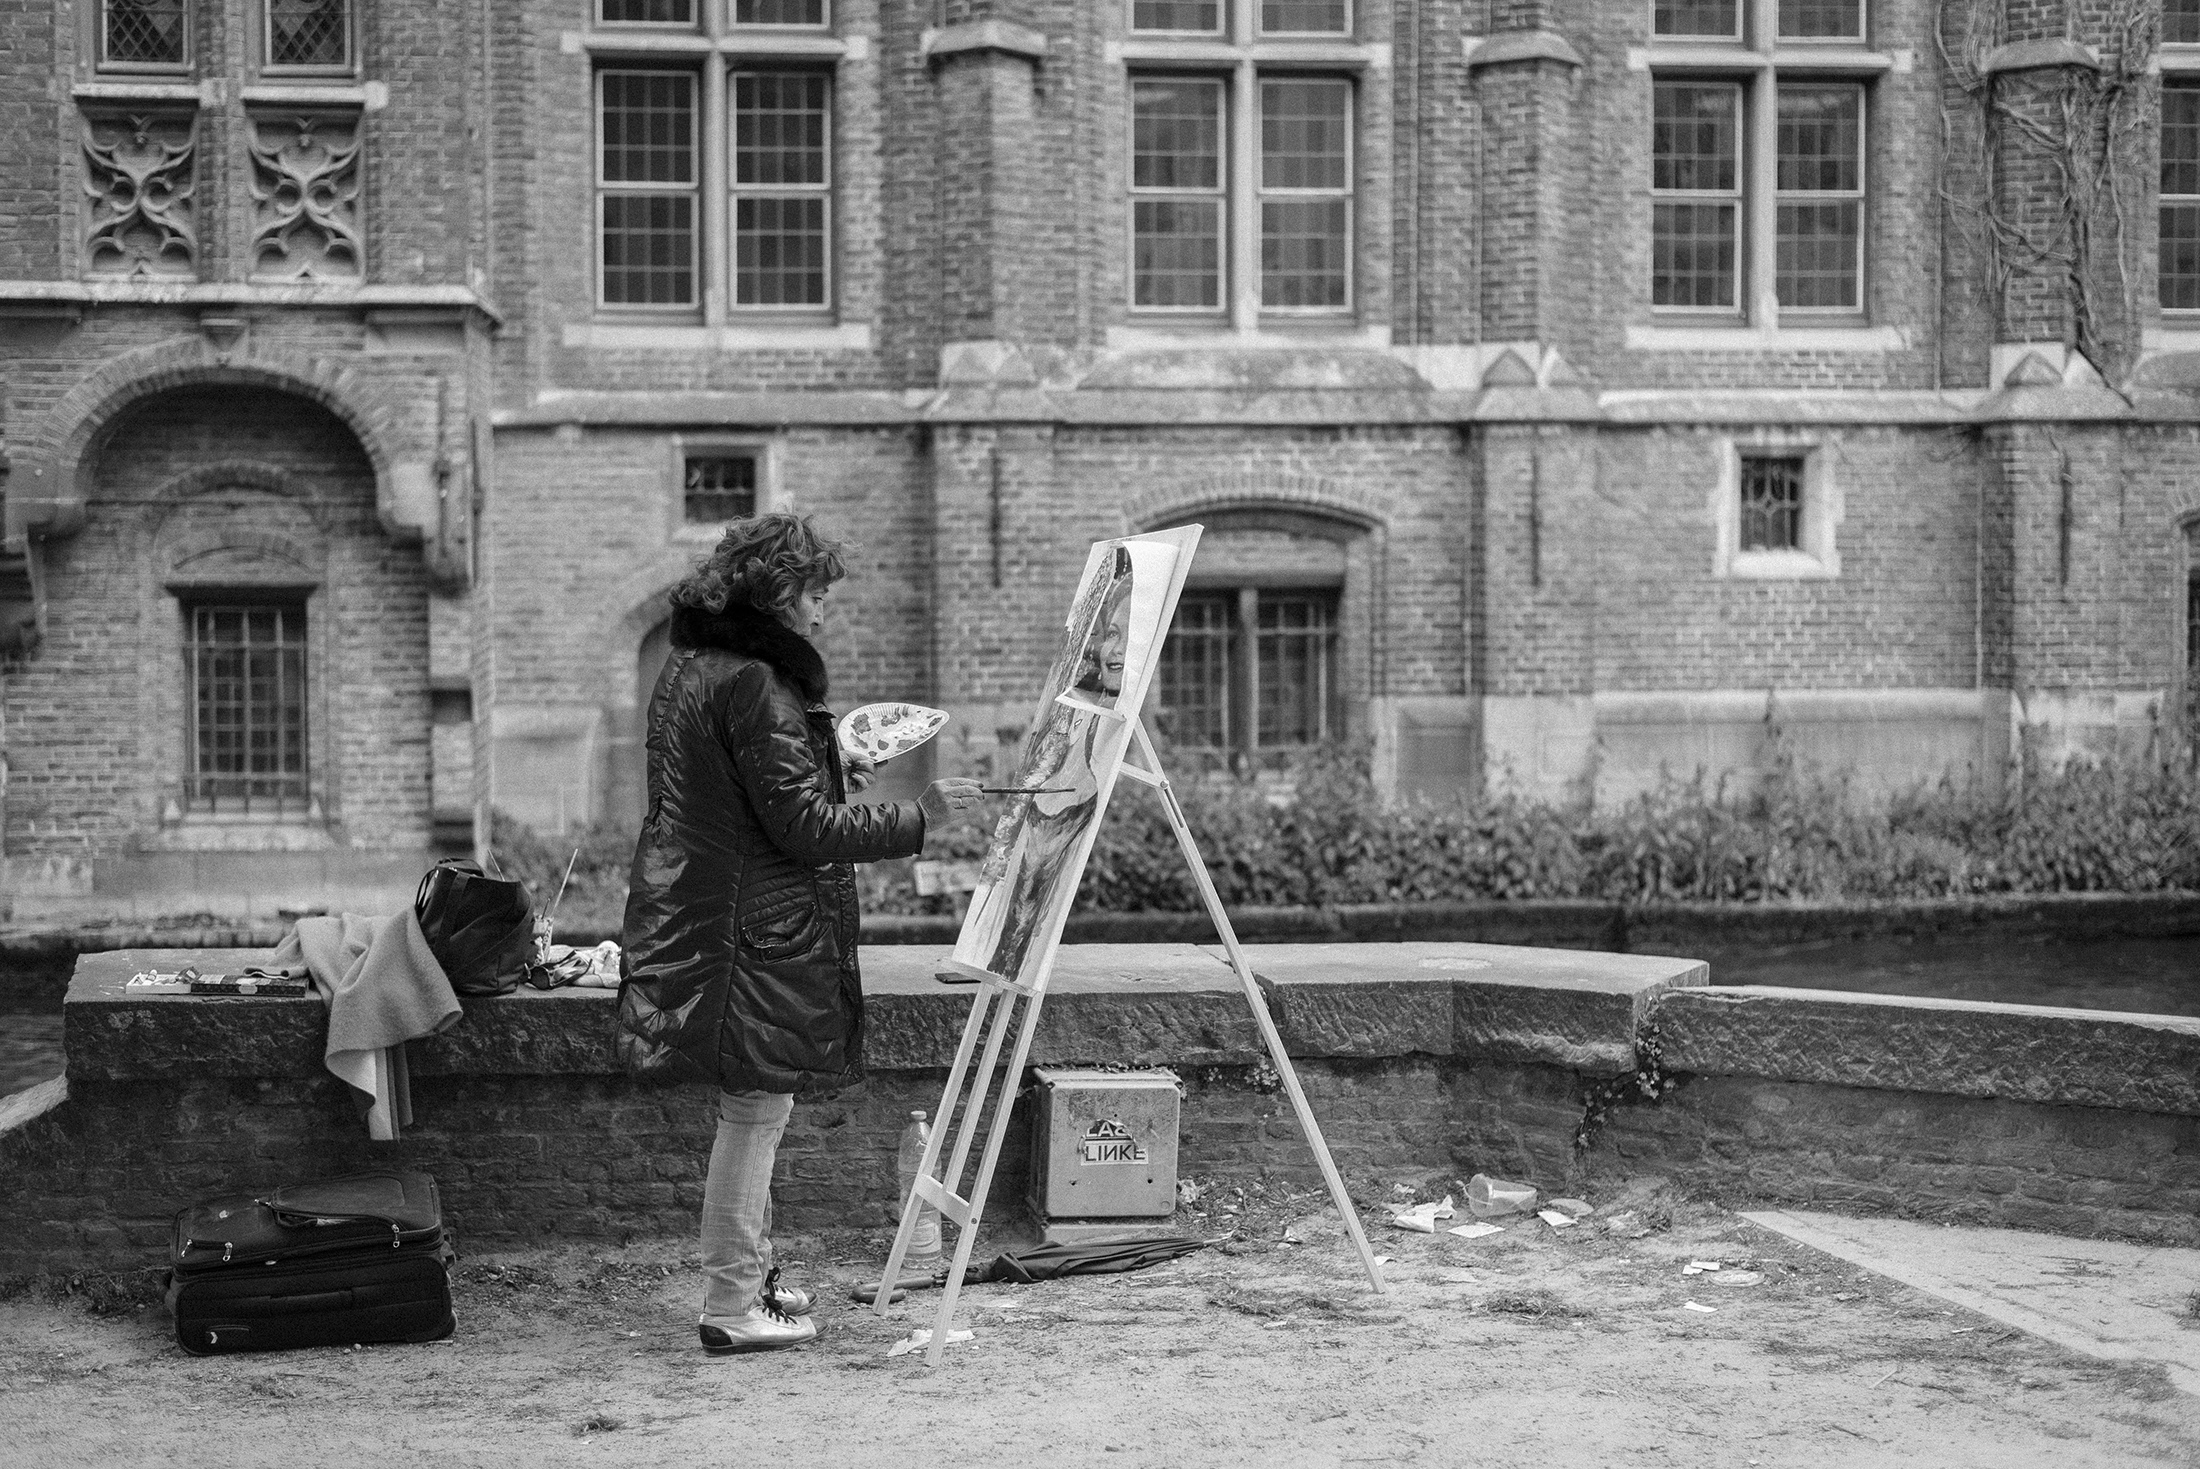 women painting on the street of Bruges Belgium - black and white photograph - Yellowish blog 2019 - Patricia Martins